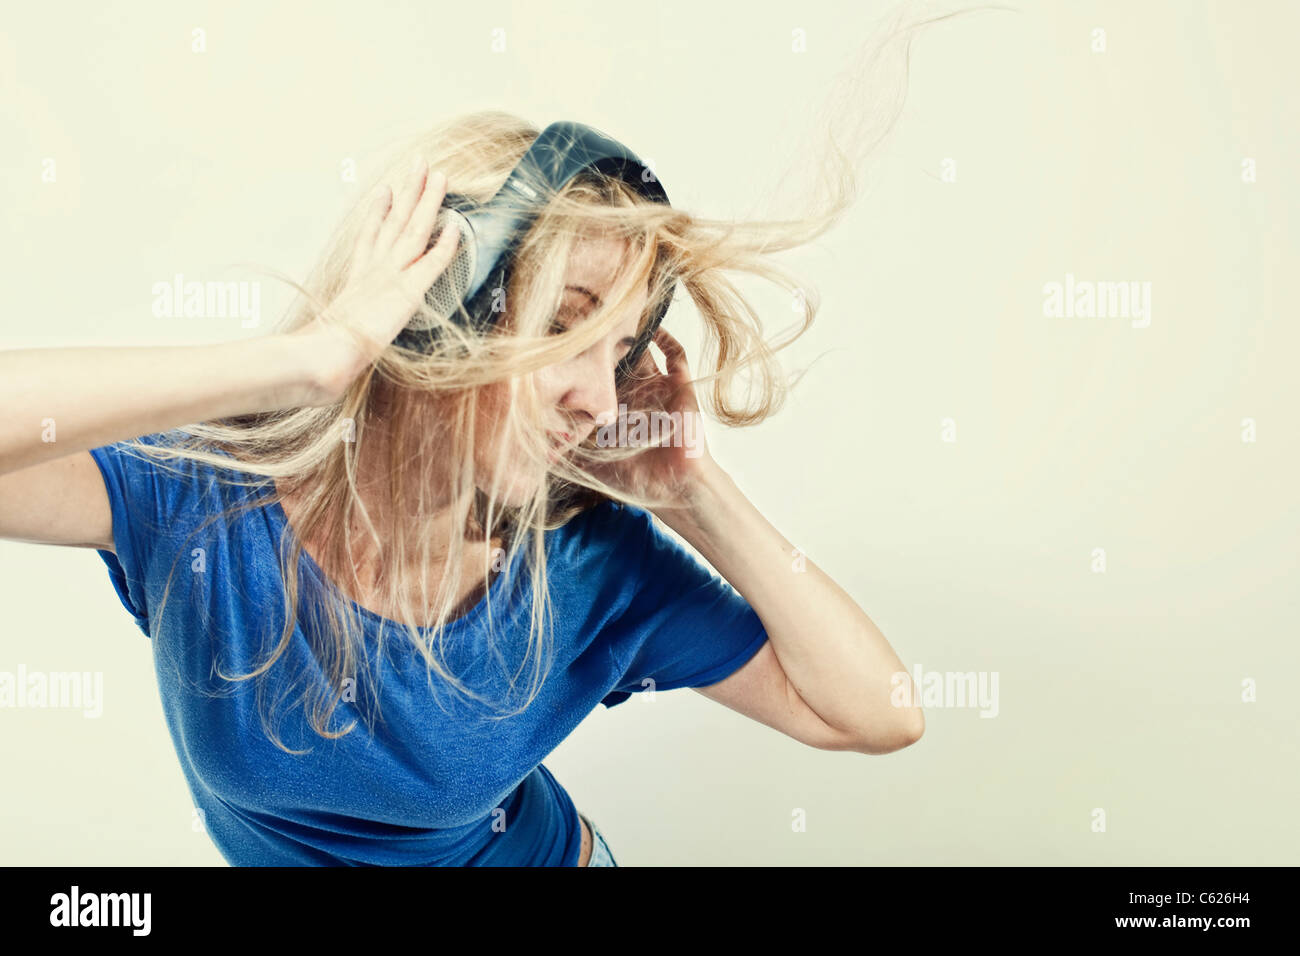 young woman singing with headphones on a light background Stock Photo